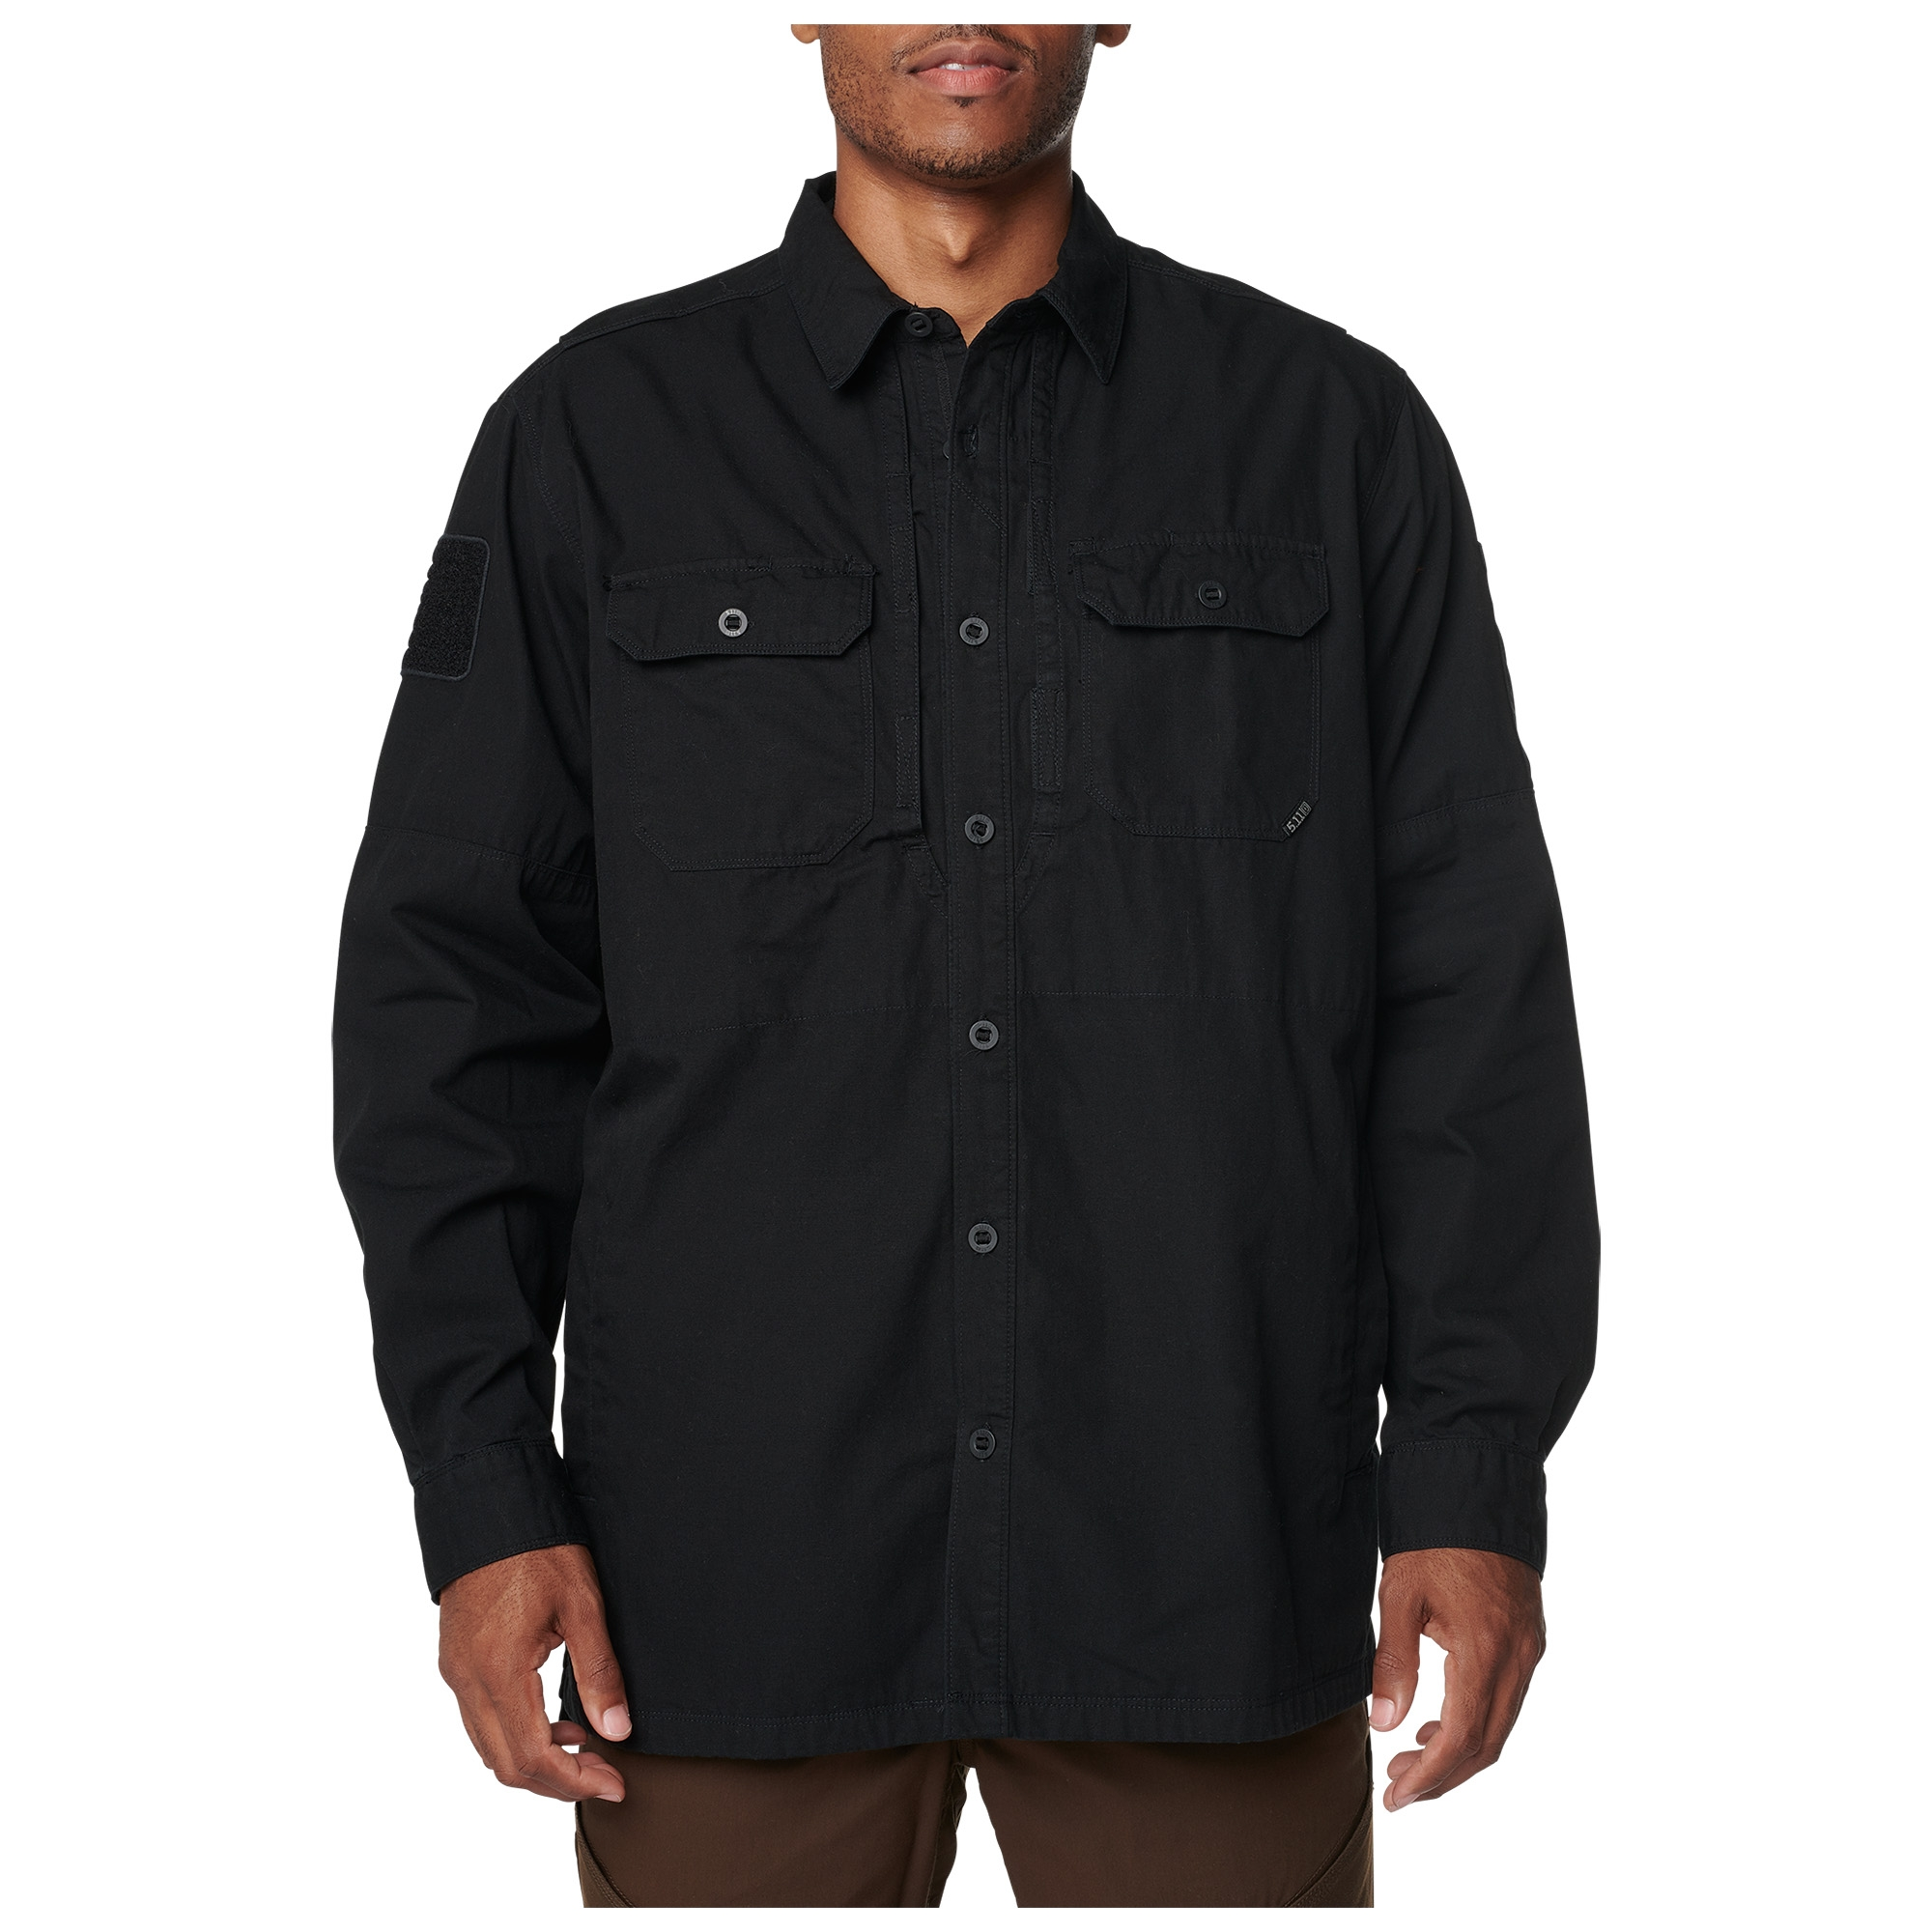 5.11 Tactical Men Frontier Shirt Jacket